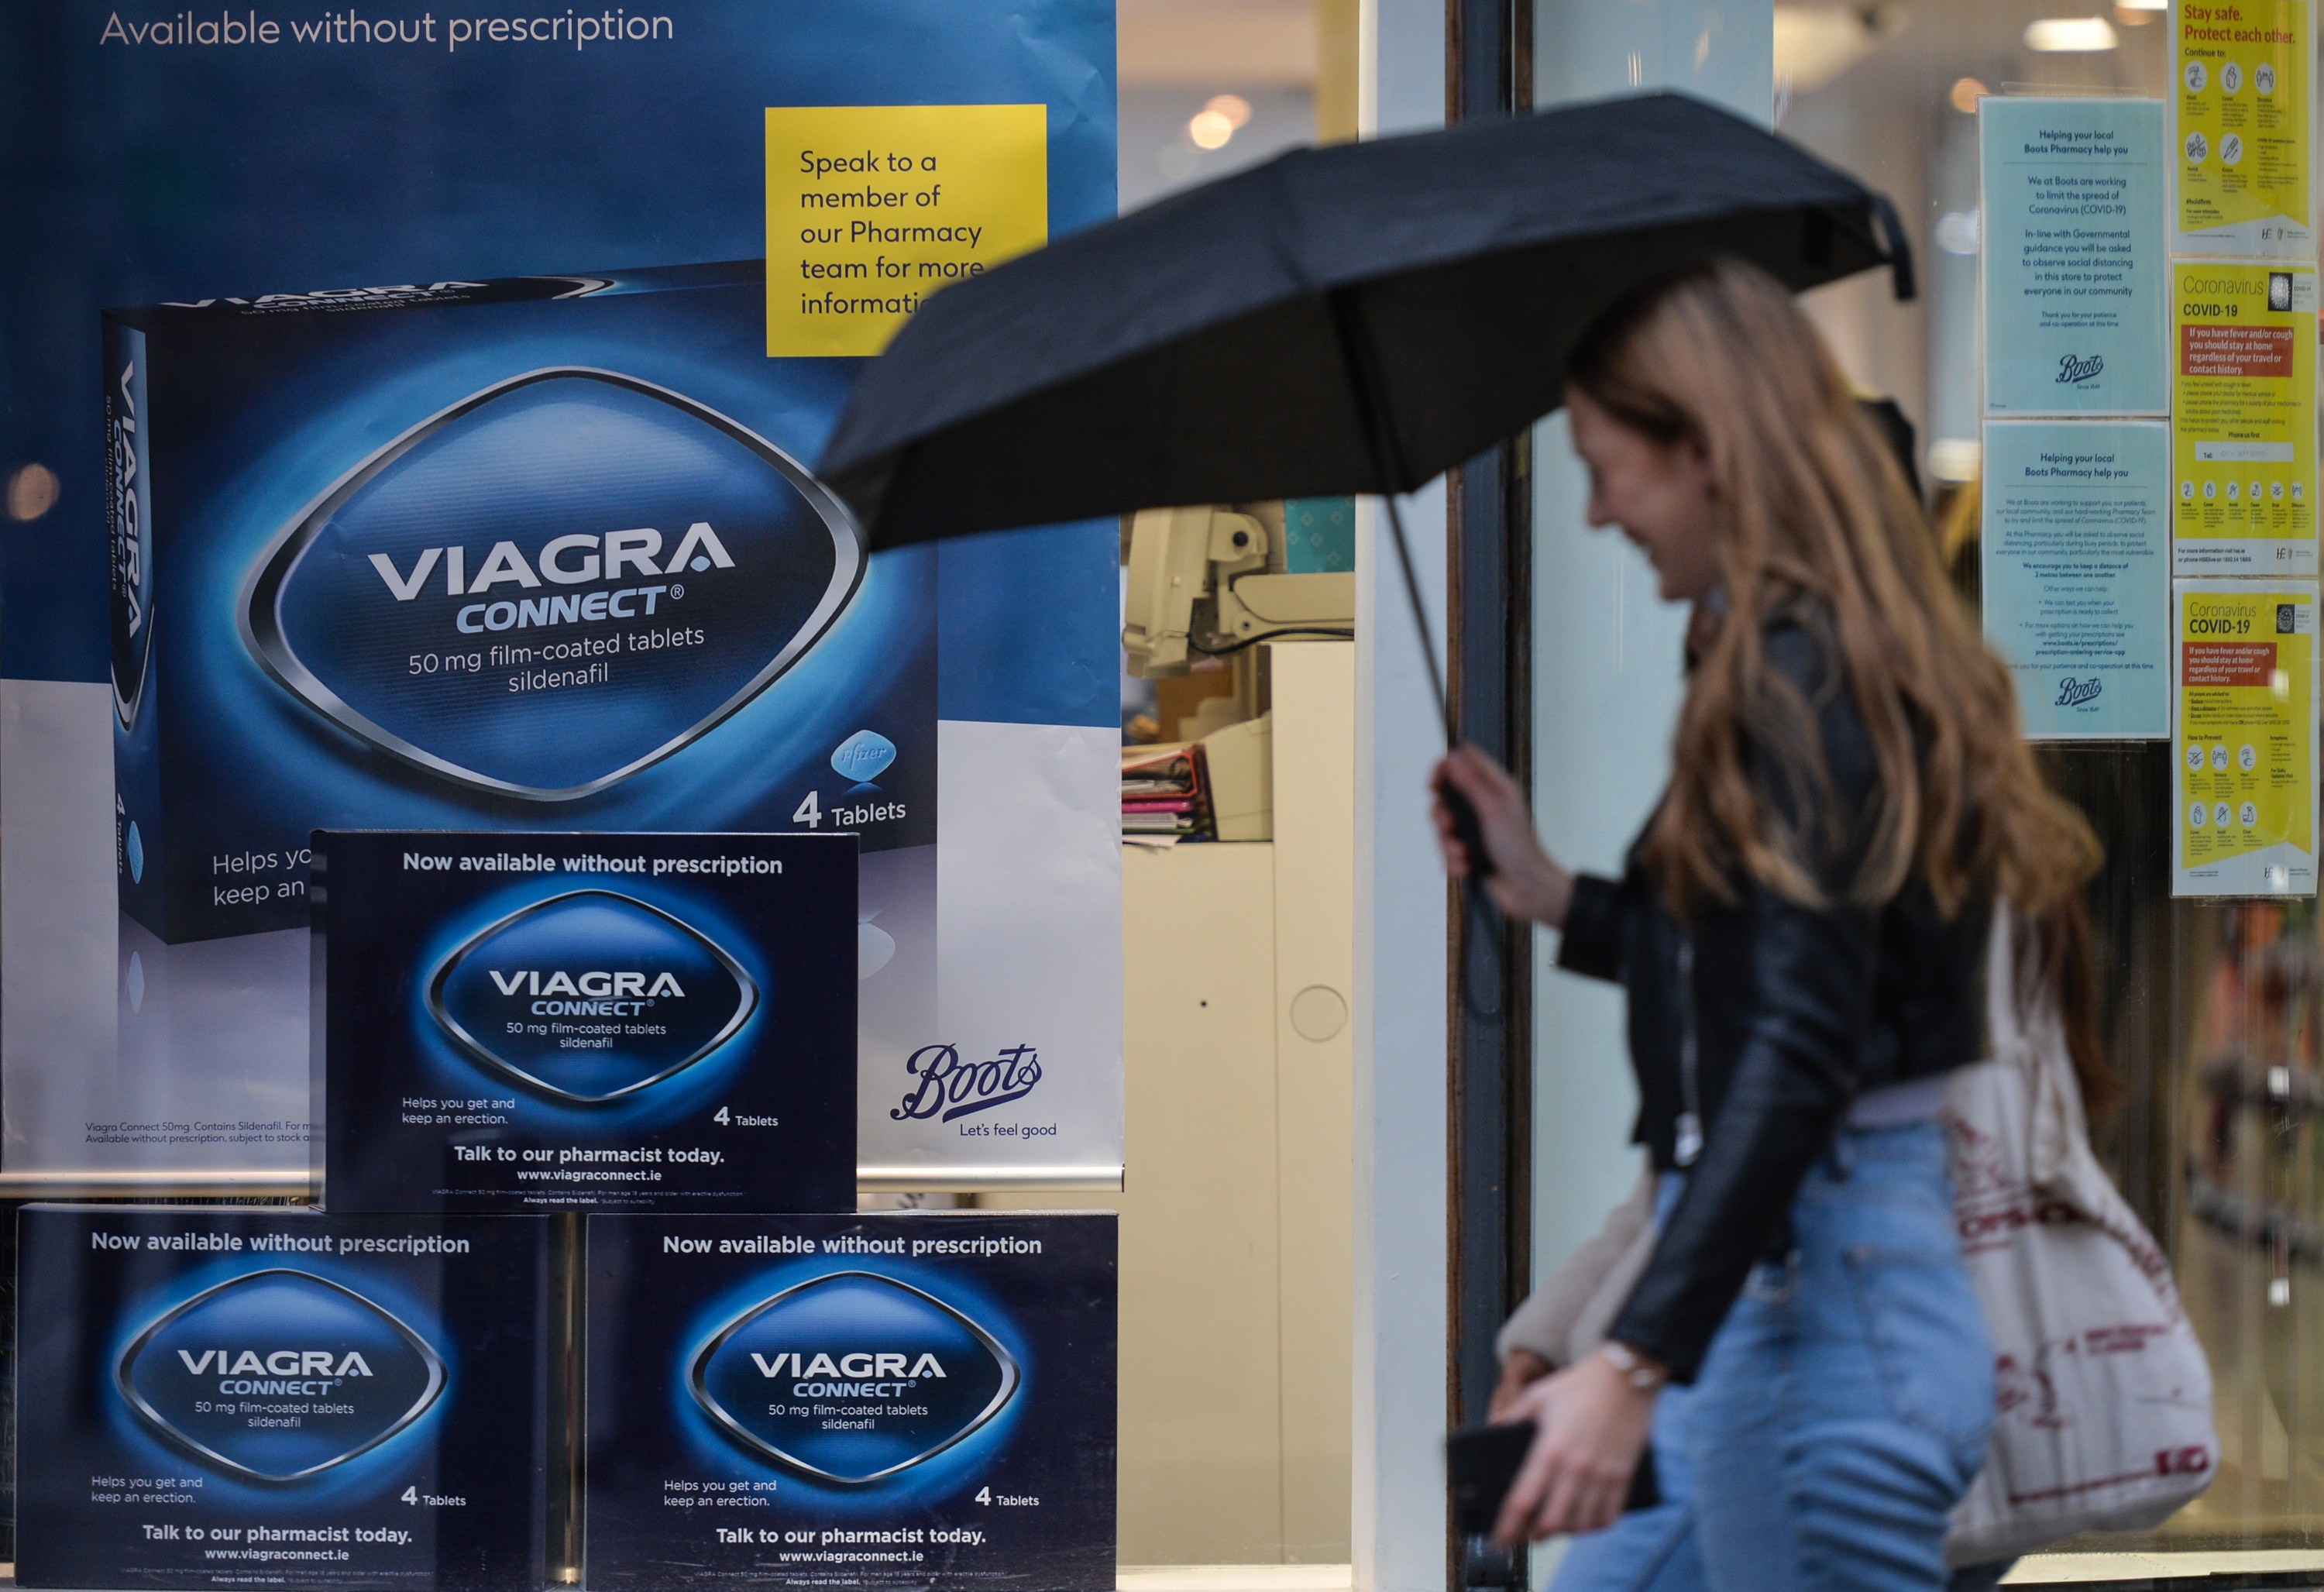 Woman walks past a Viagra connect add in a storefront